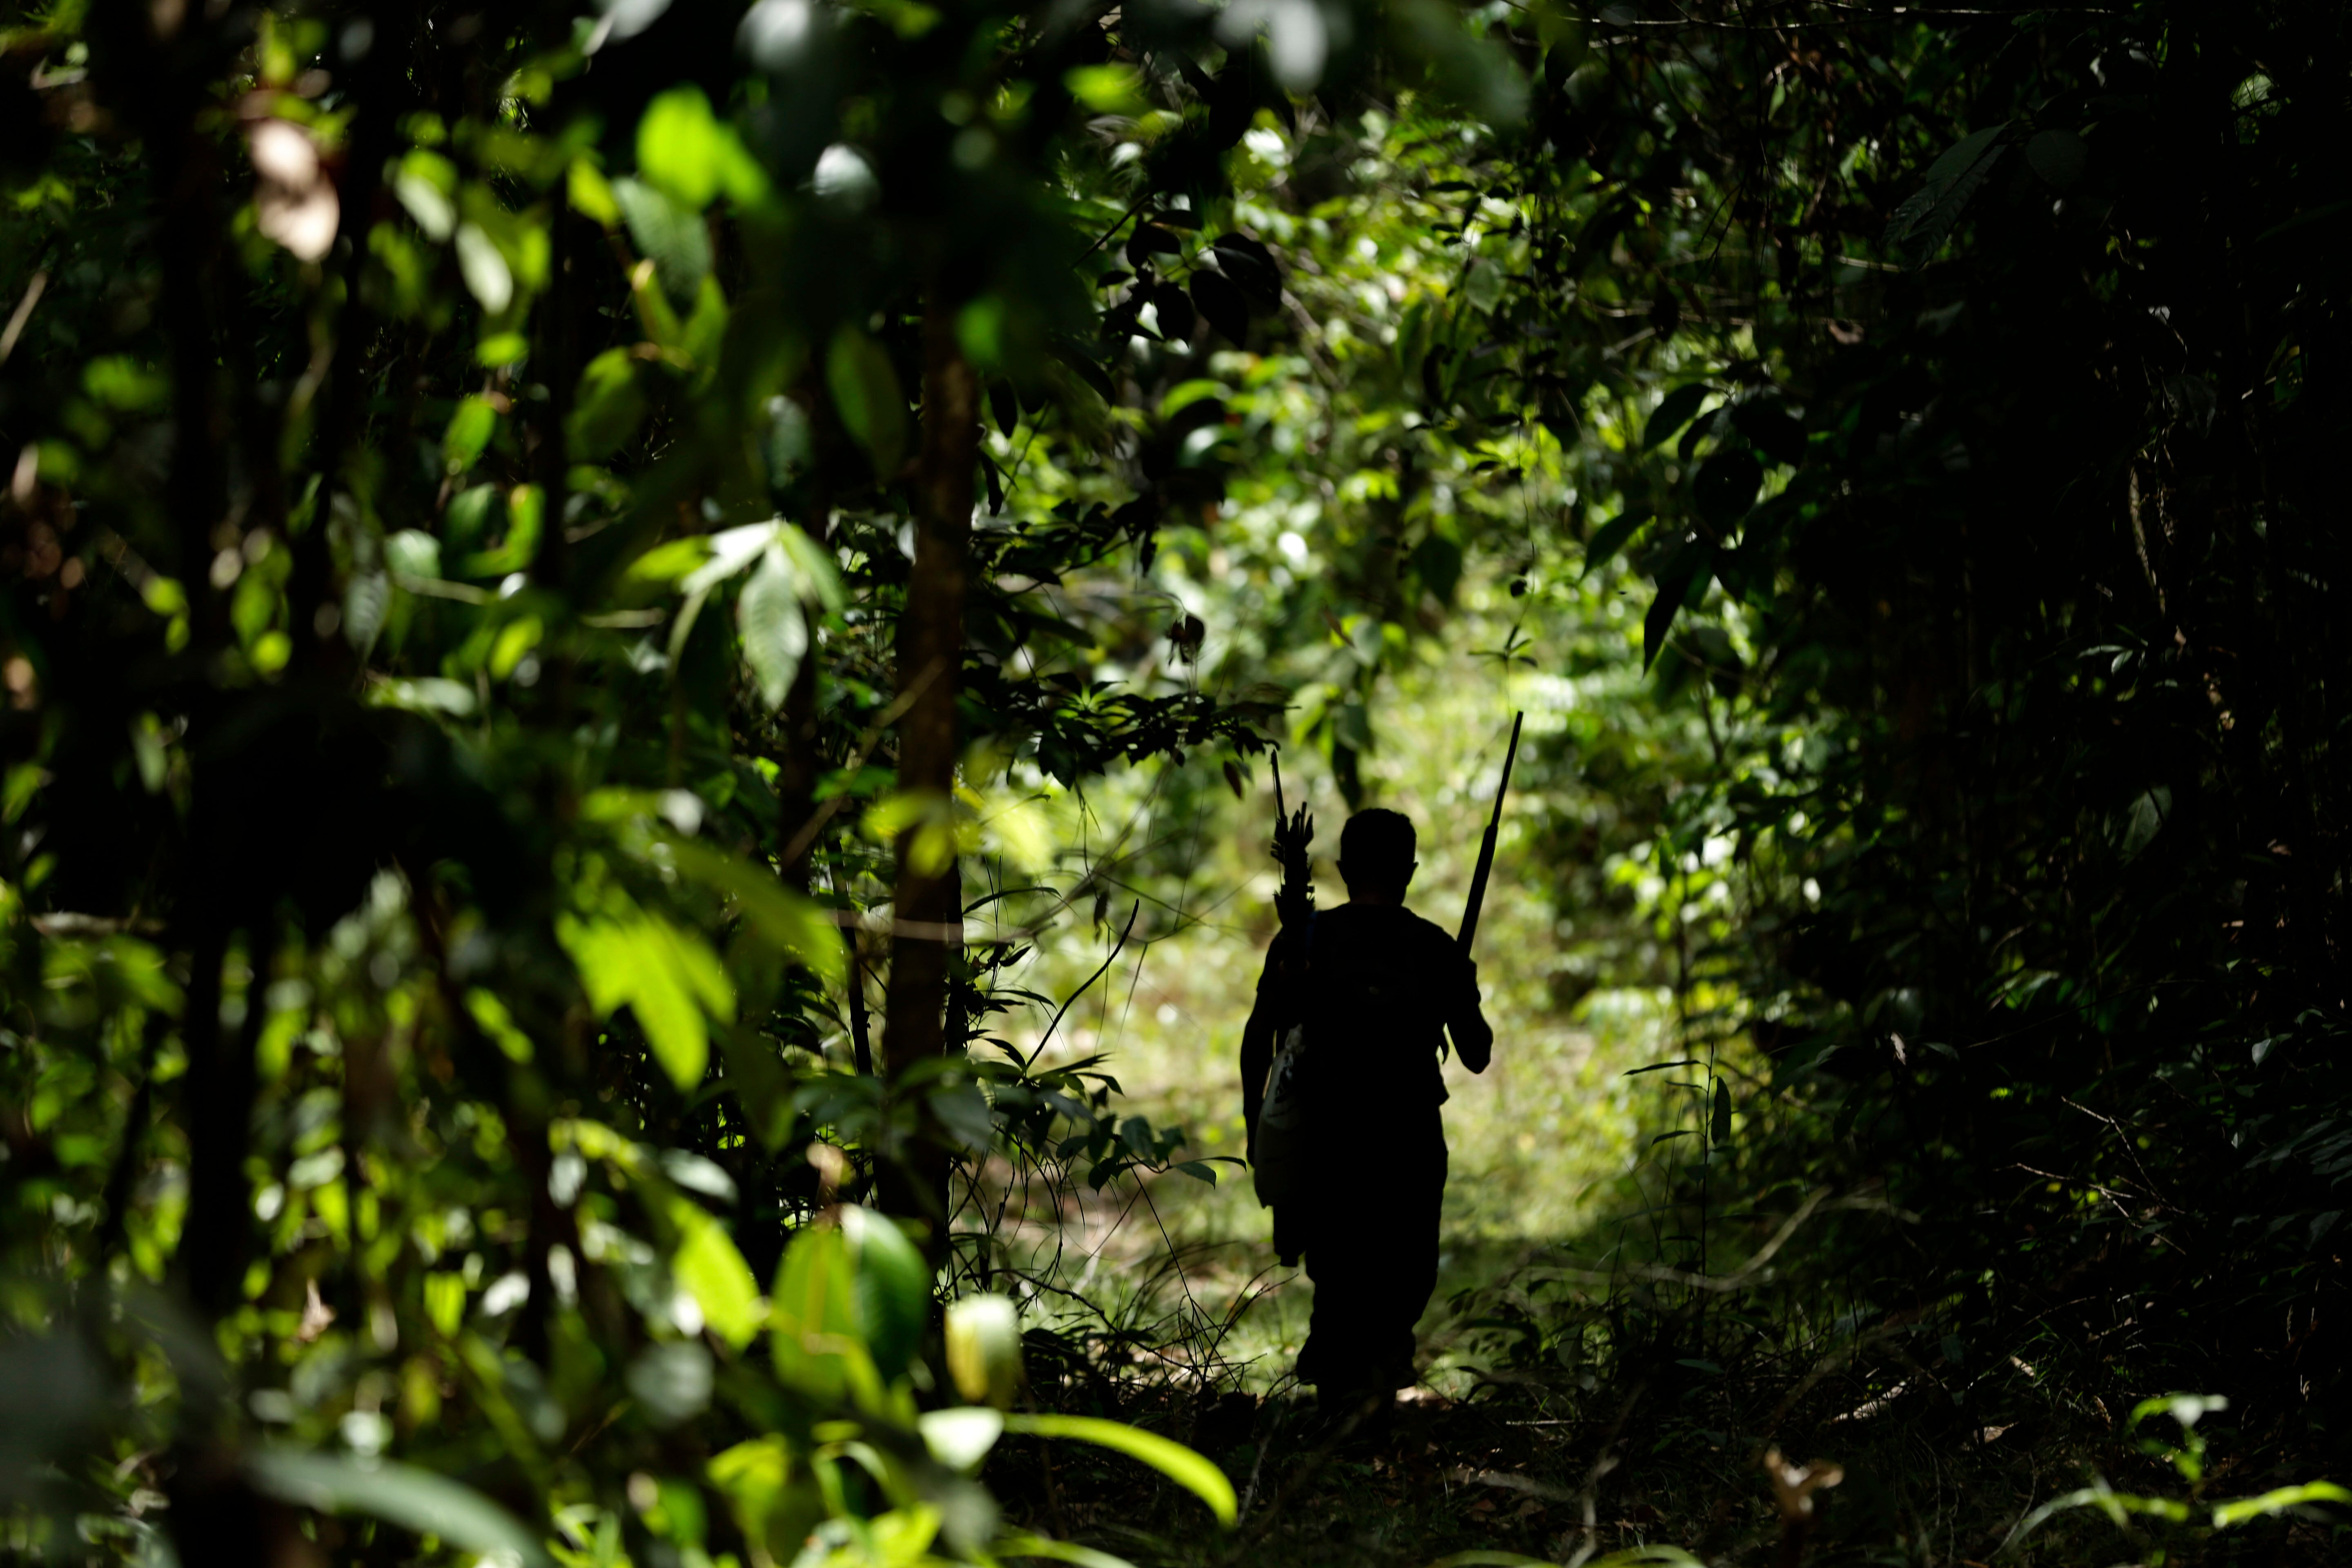 A Tenetehara Indigenous man patrols with the Ka'Azar, or Forest Owners, on the Alto Rio Guama reserve in Para state, ne